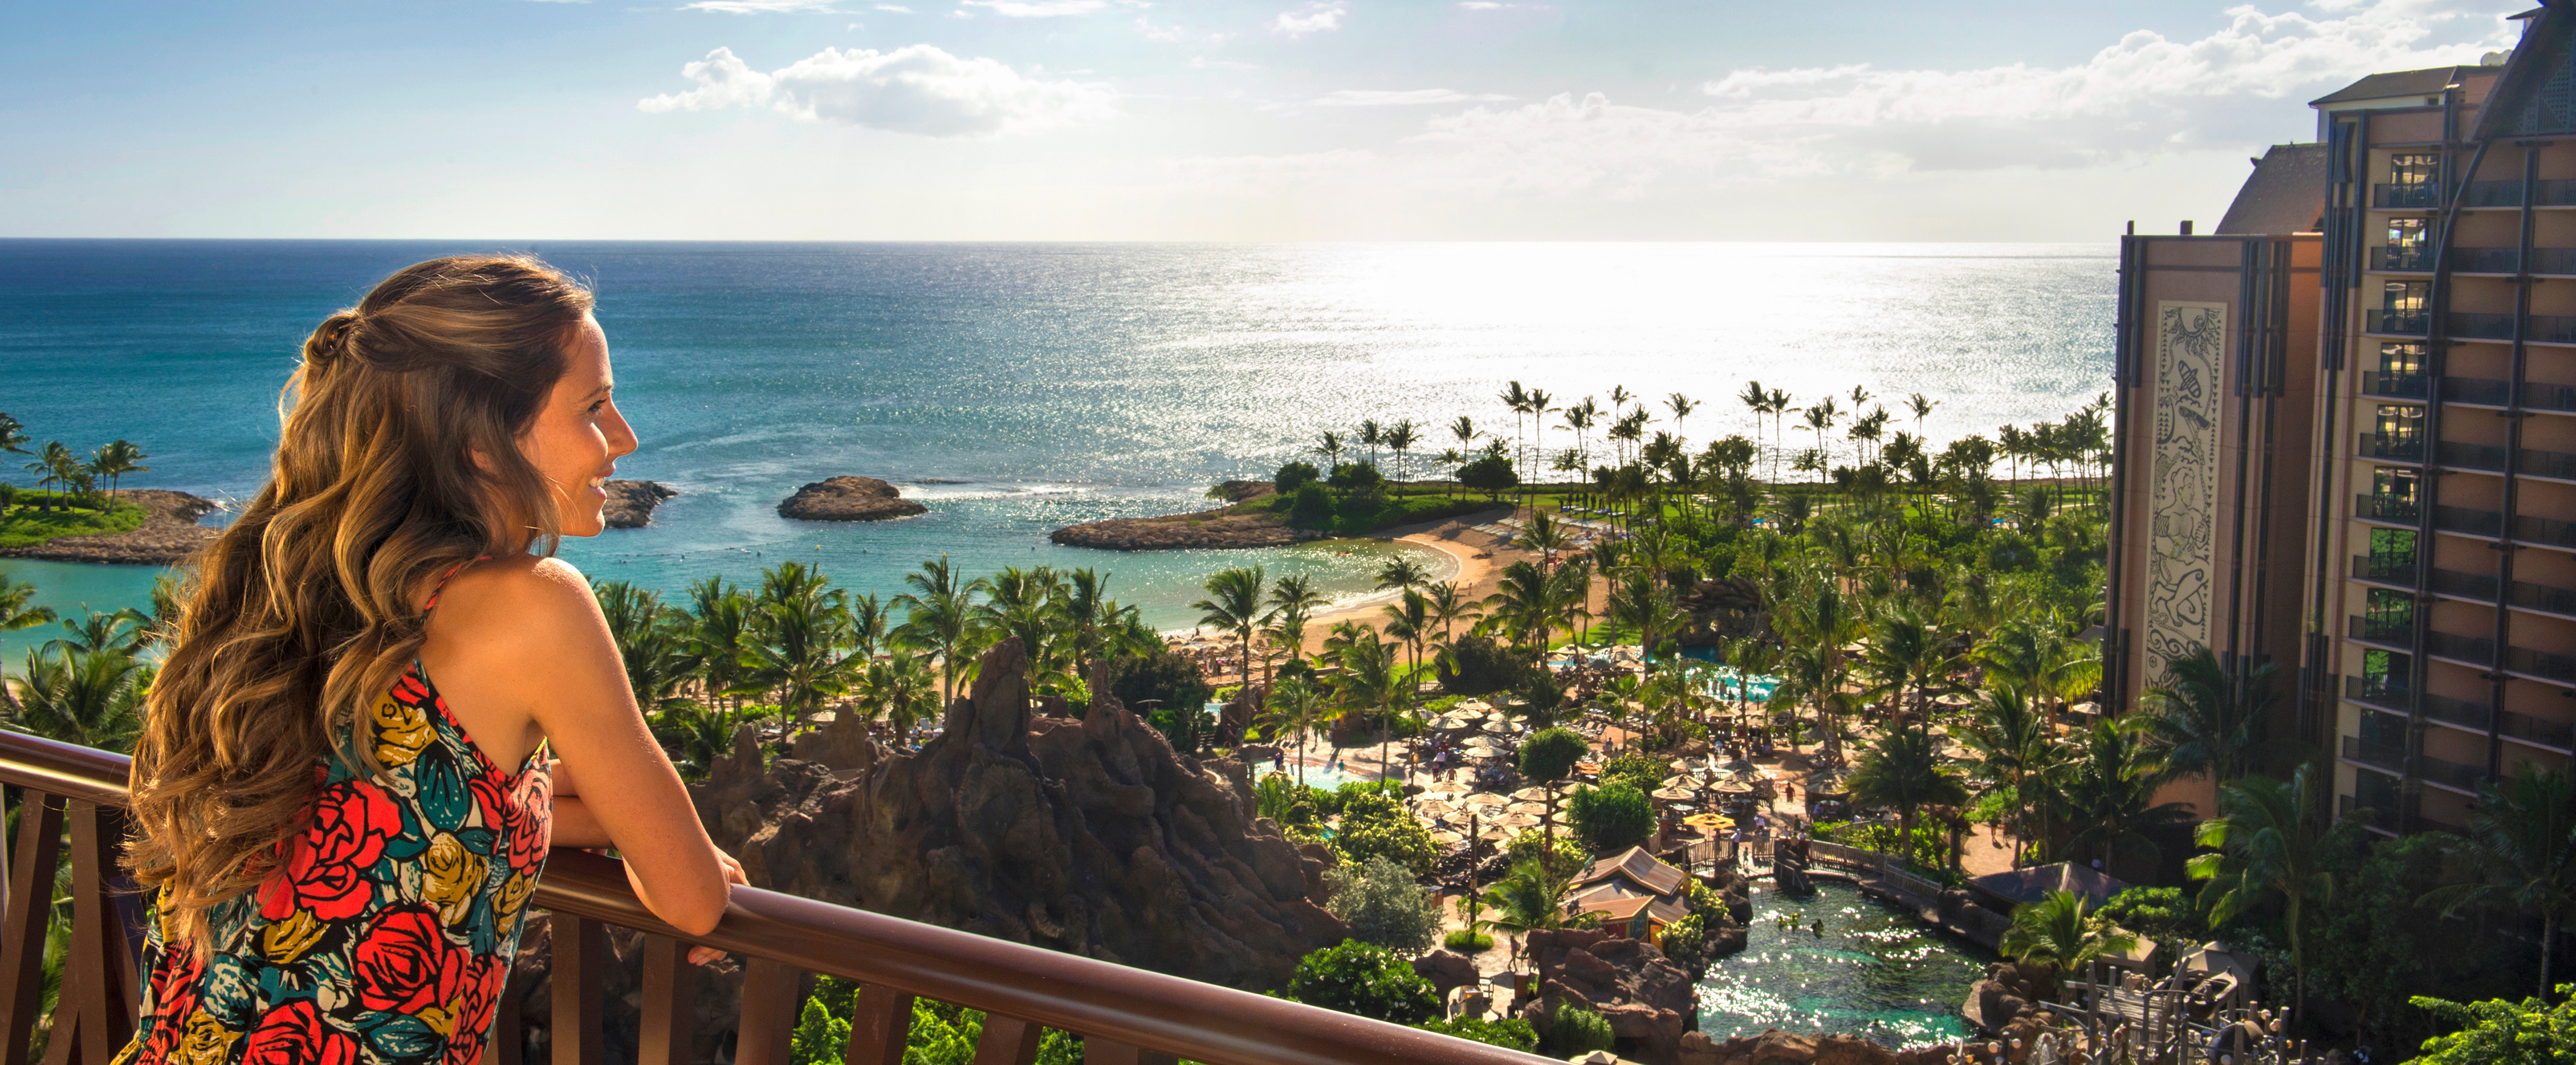 oahu hotel rooms & suites | aulani hawaii resort & spa